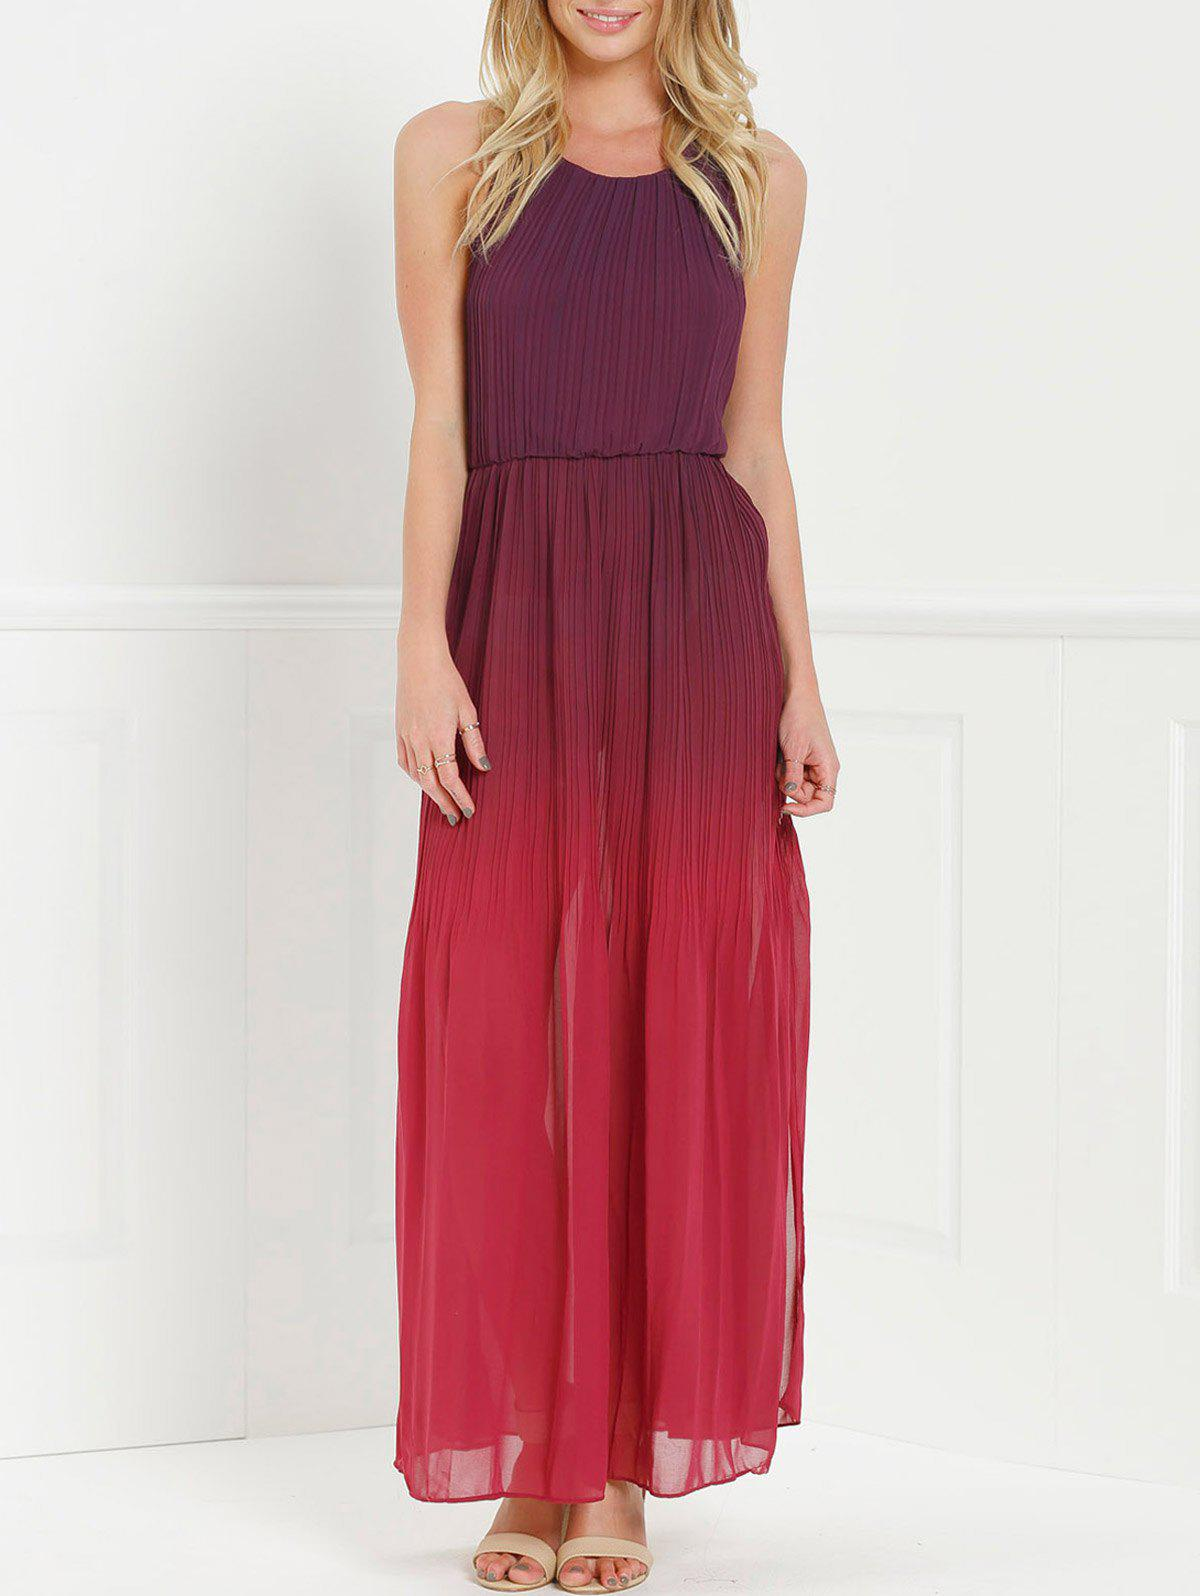 Halter Sleeveless Ombre Chiffon High Slit Maxi Party Dress - RED S